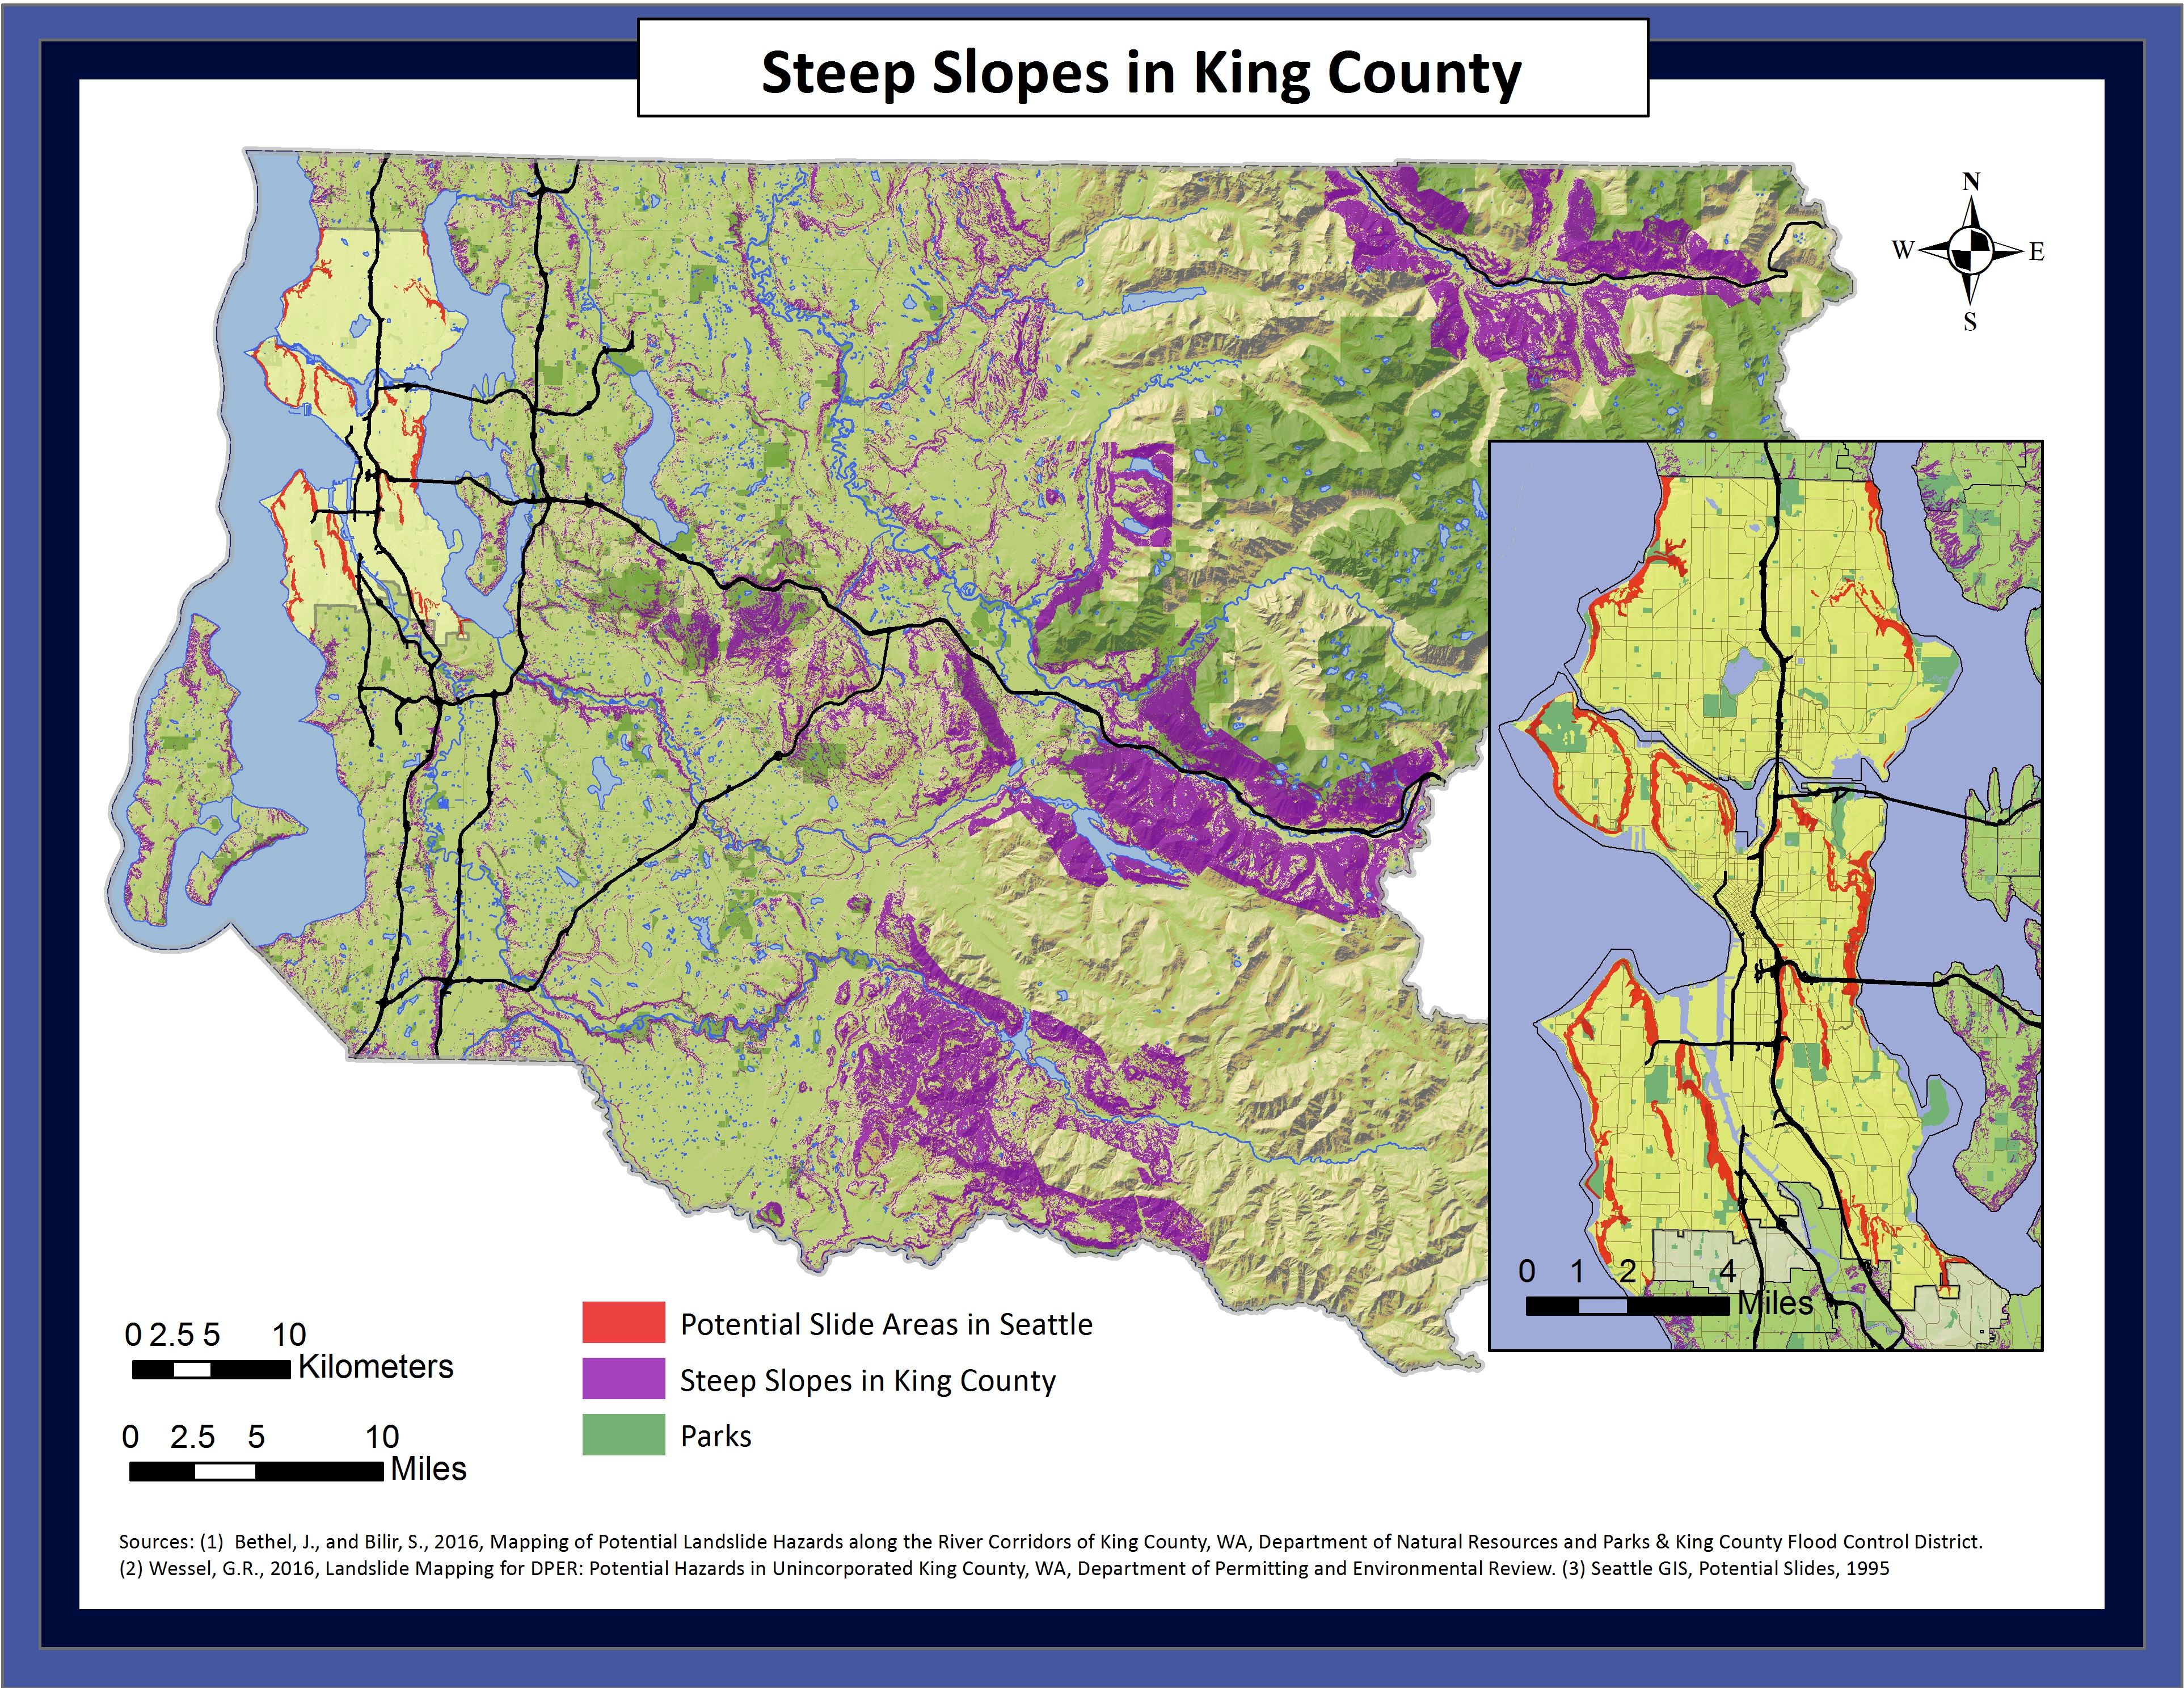 king county topo map, king county parcel search, king county landslide hazard map, king county demographics map, on king county gis map